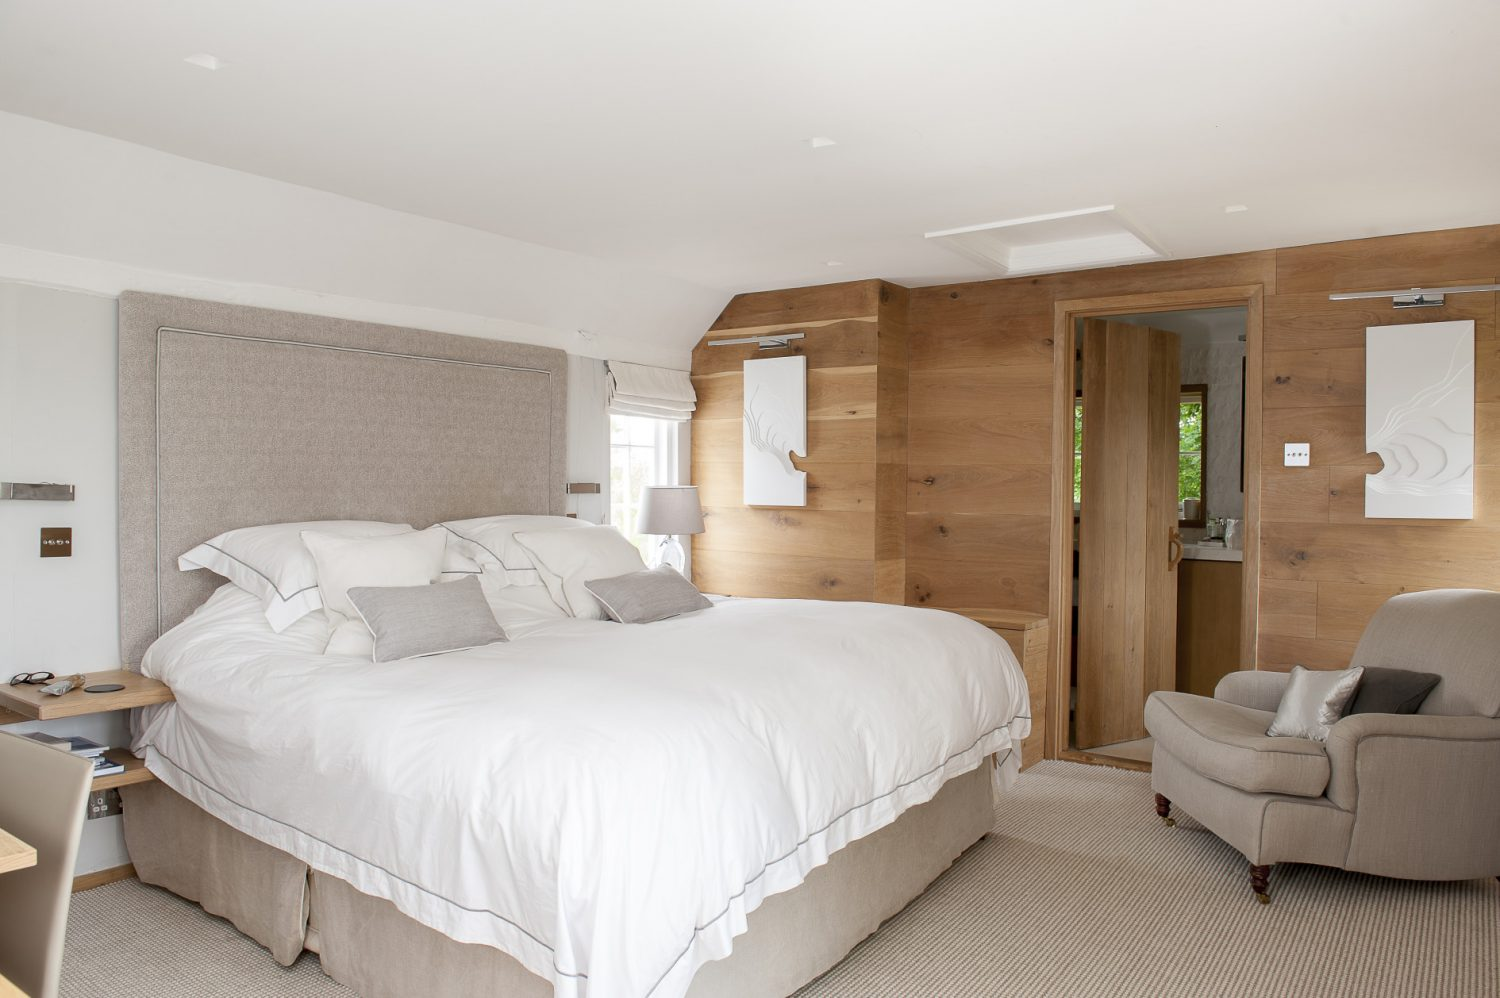 The main bedroom is an oasis of calm and order – helped by muted colours and the addition of an en suite dressing room and hidden cupboards